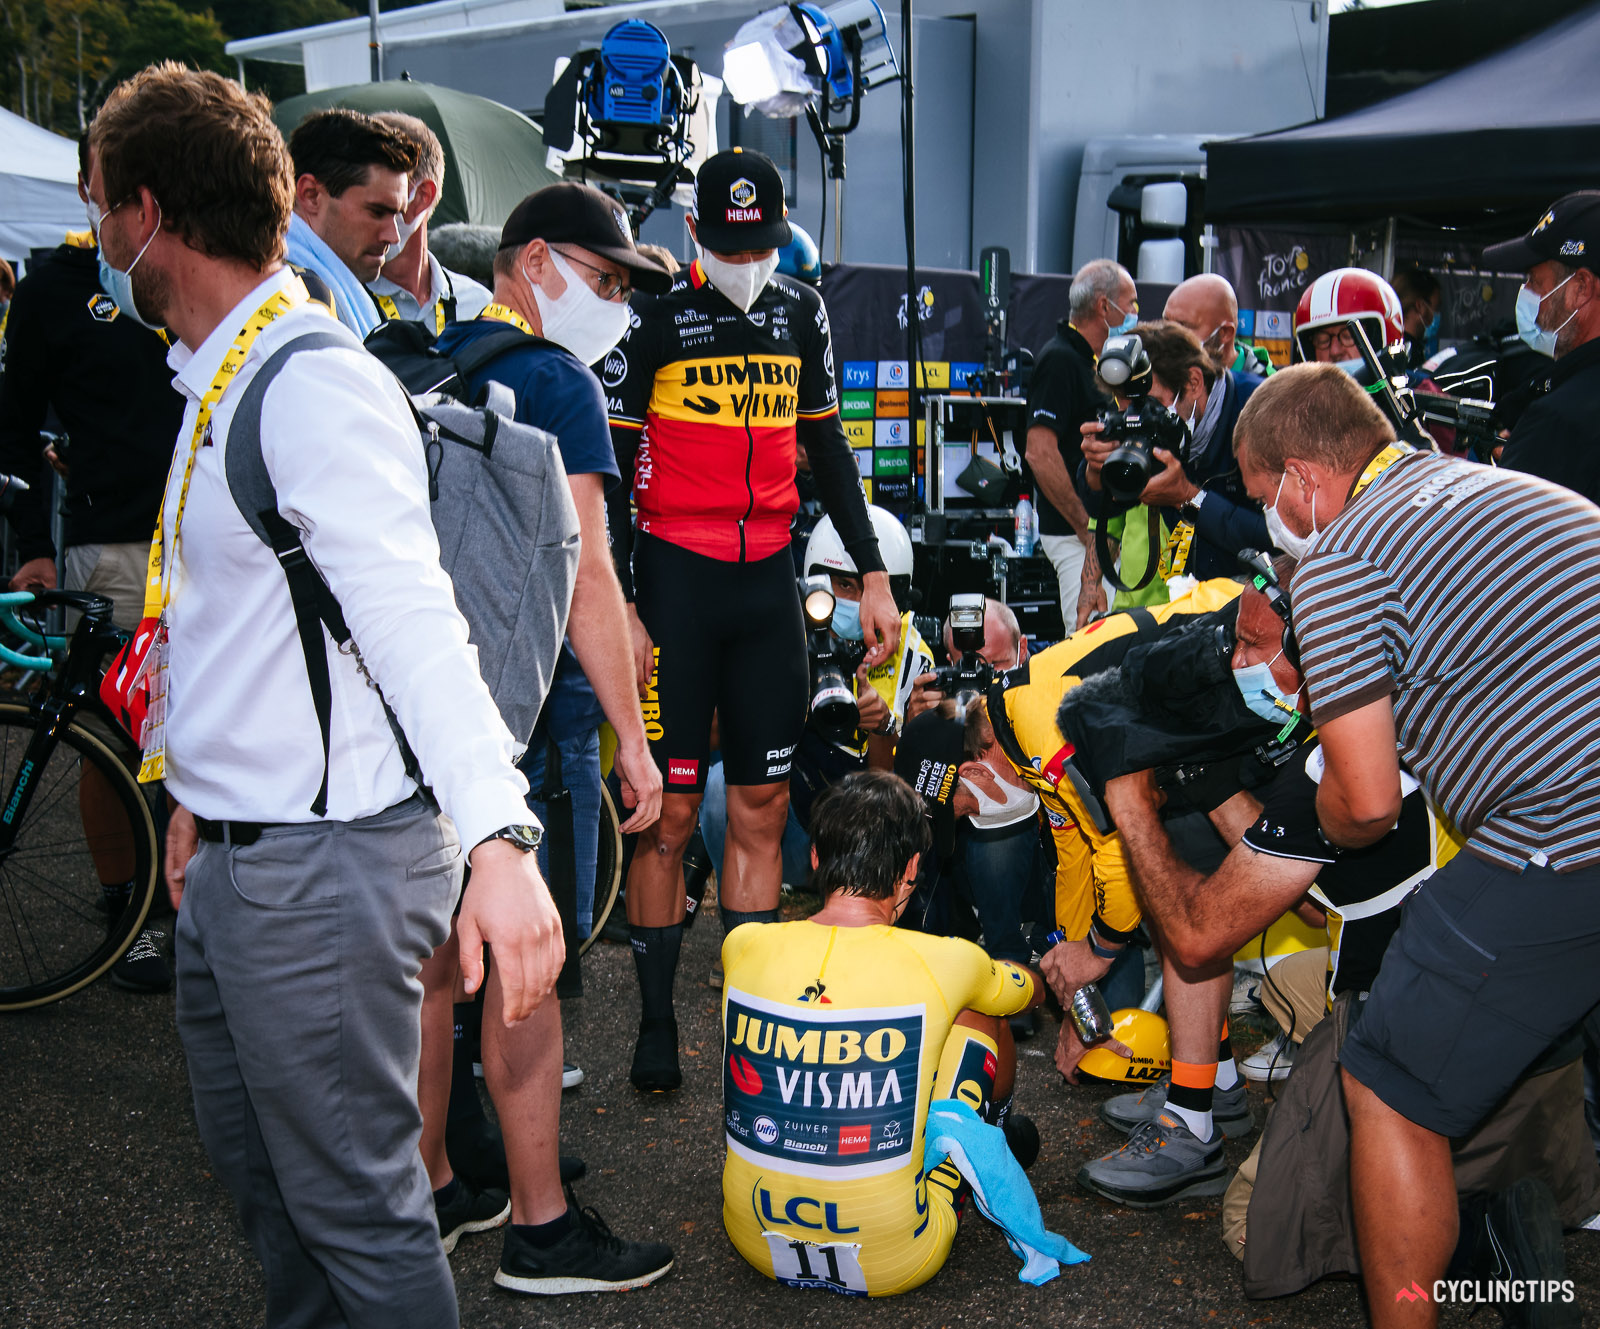 What do you say to someone who just lost the Tour de France?